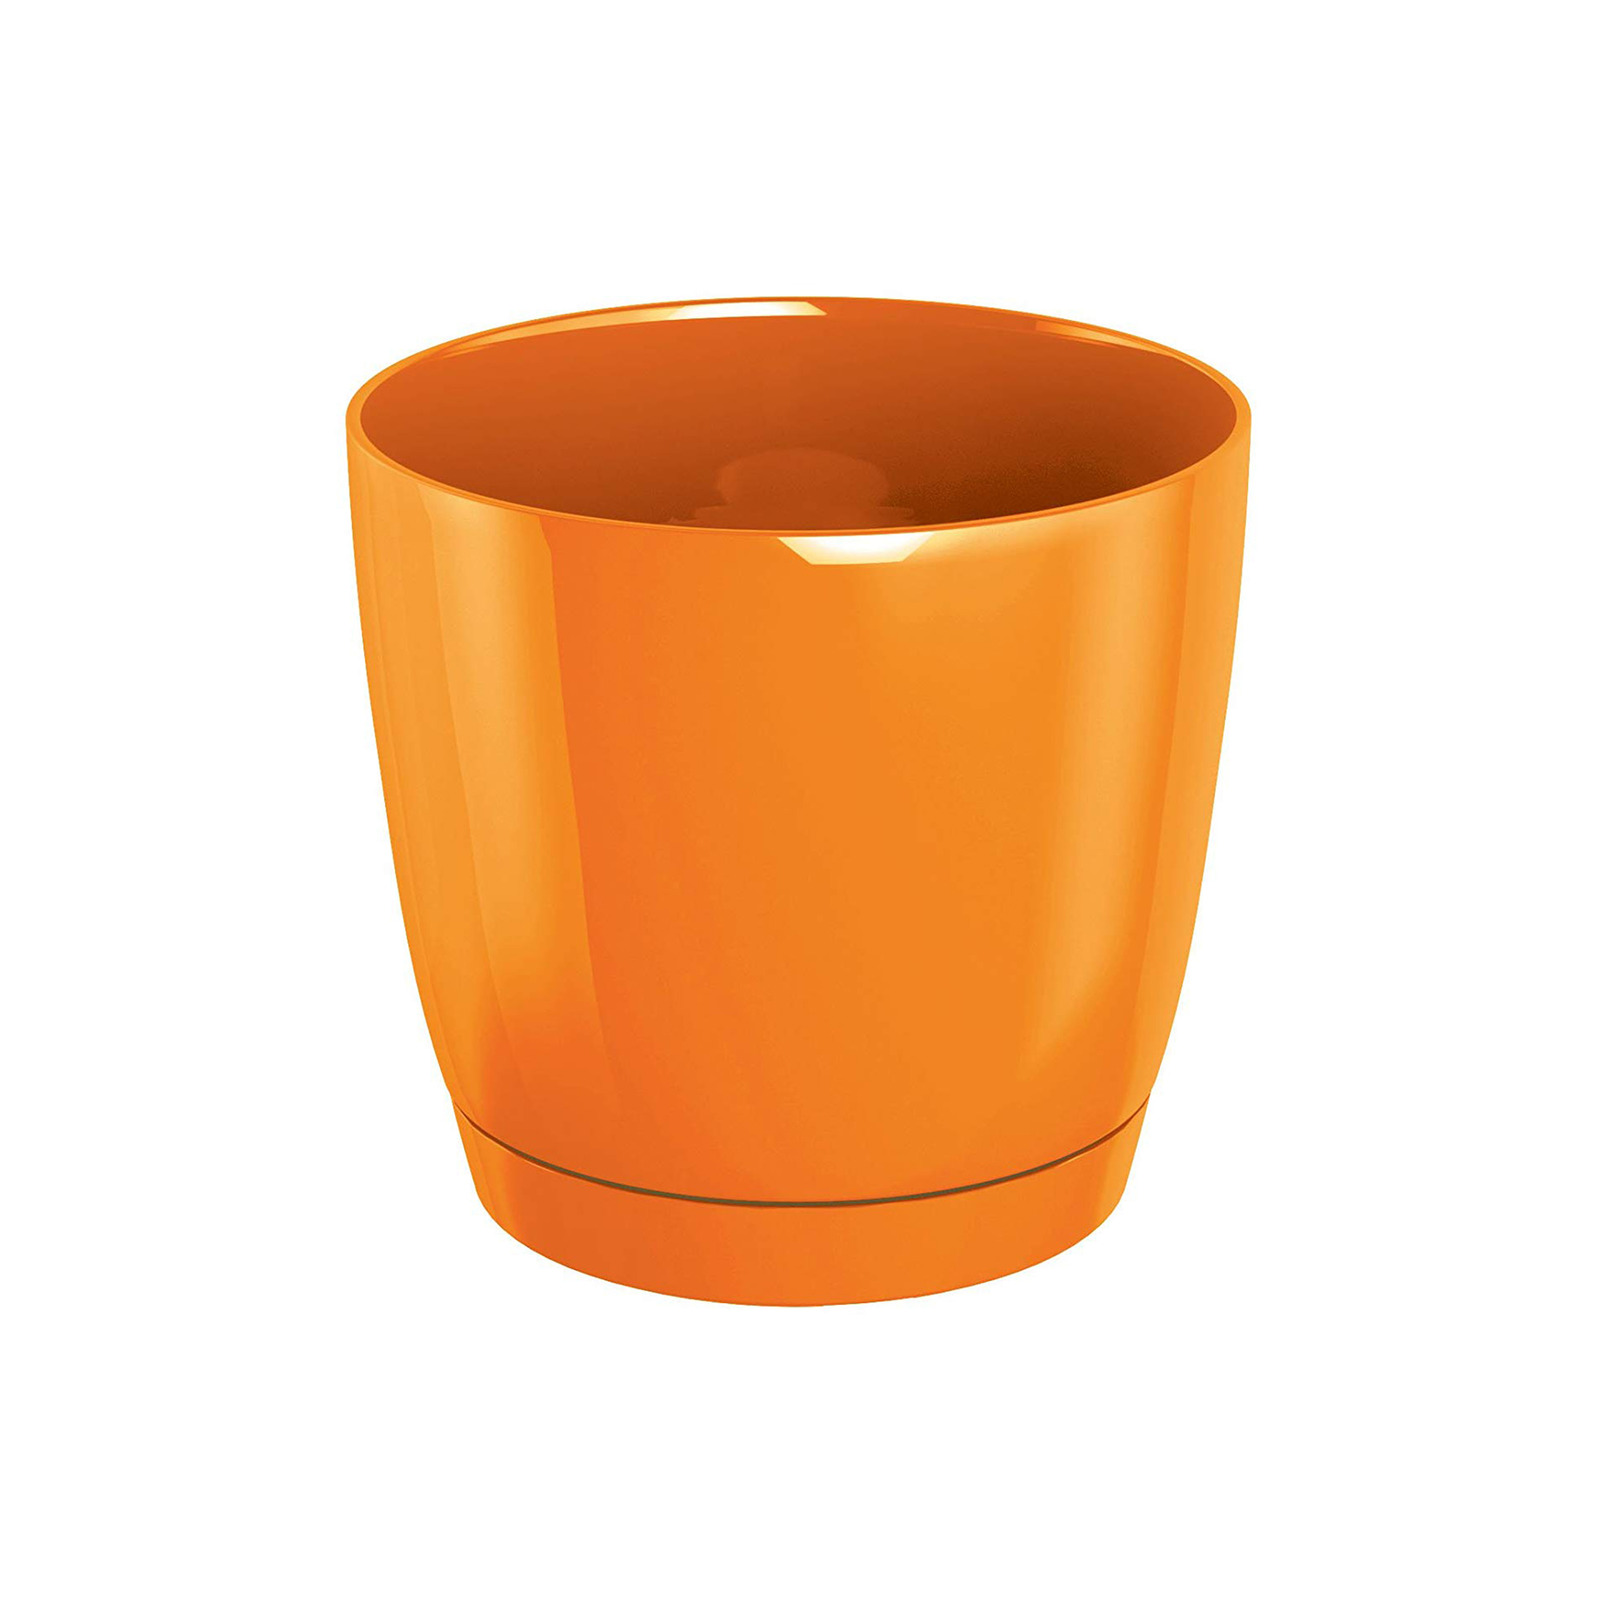 Prosperplast Coubi Flower Pot - Orange (120mm X 110mm)